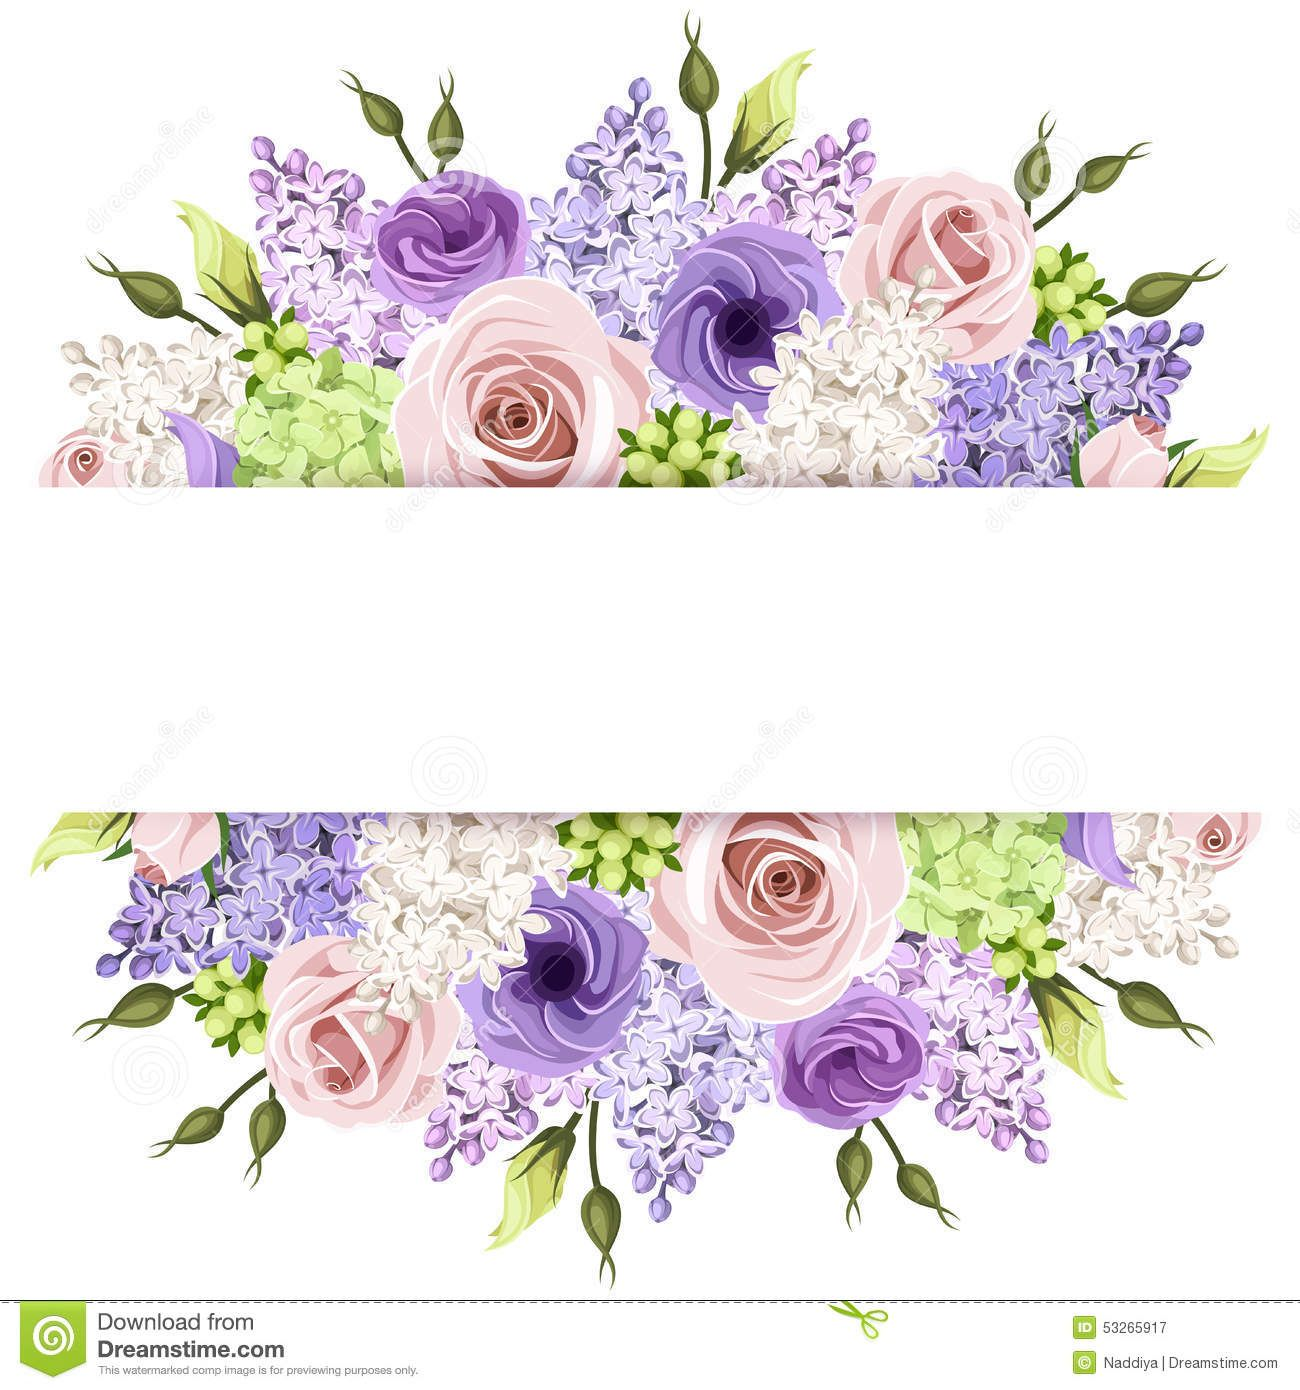 Vector horizontal background with pink, purple, white and